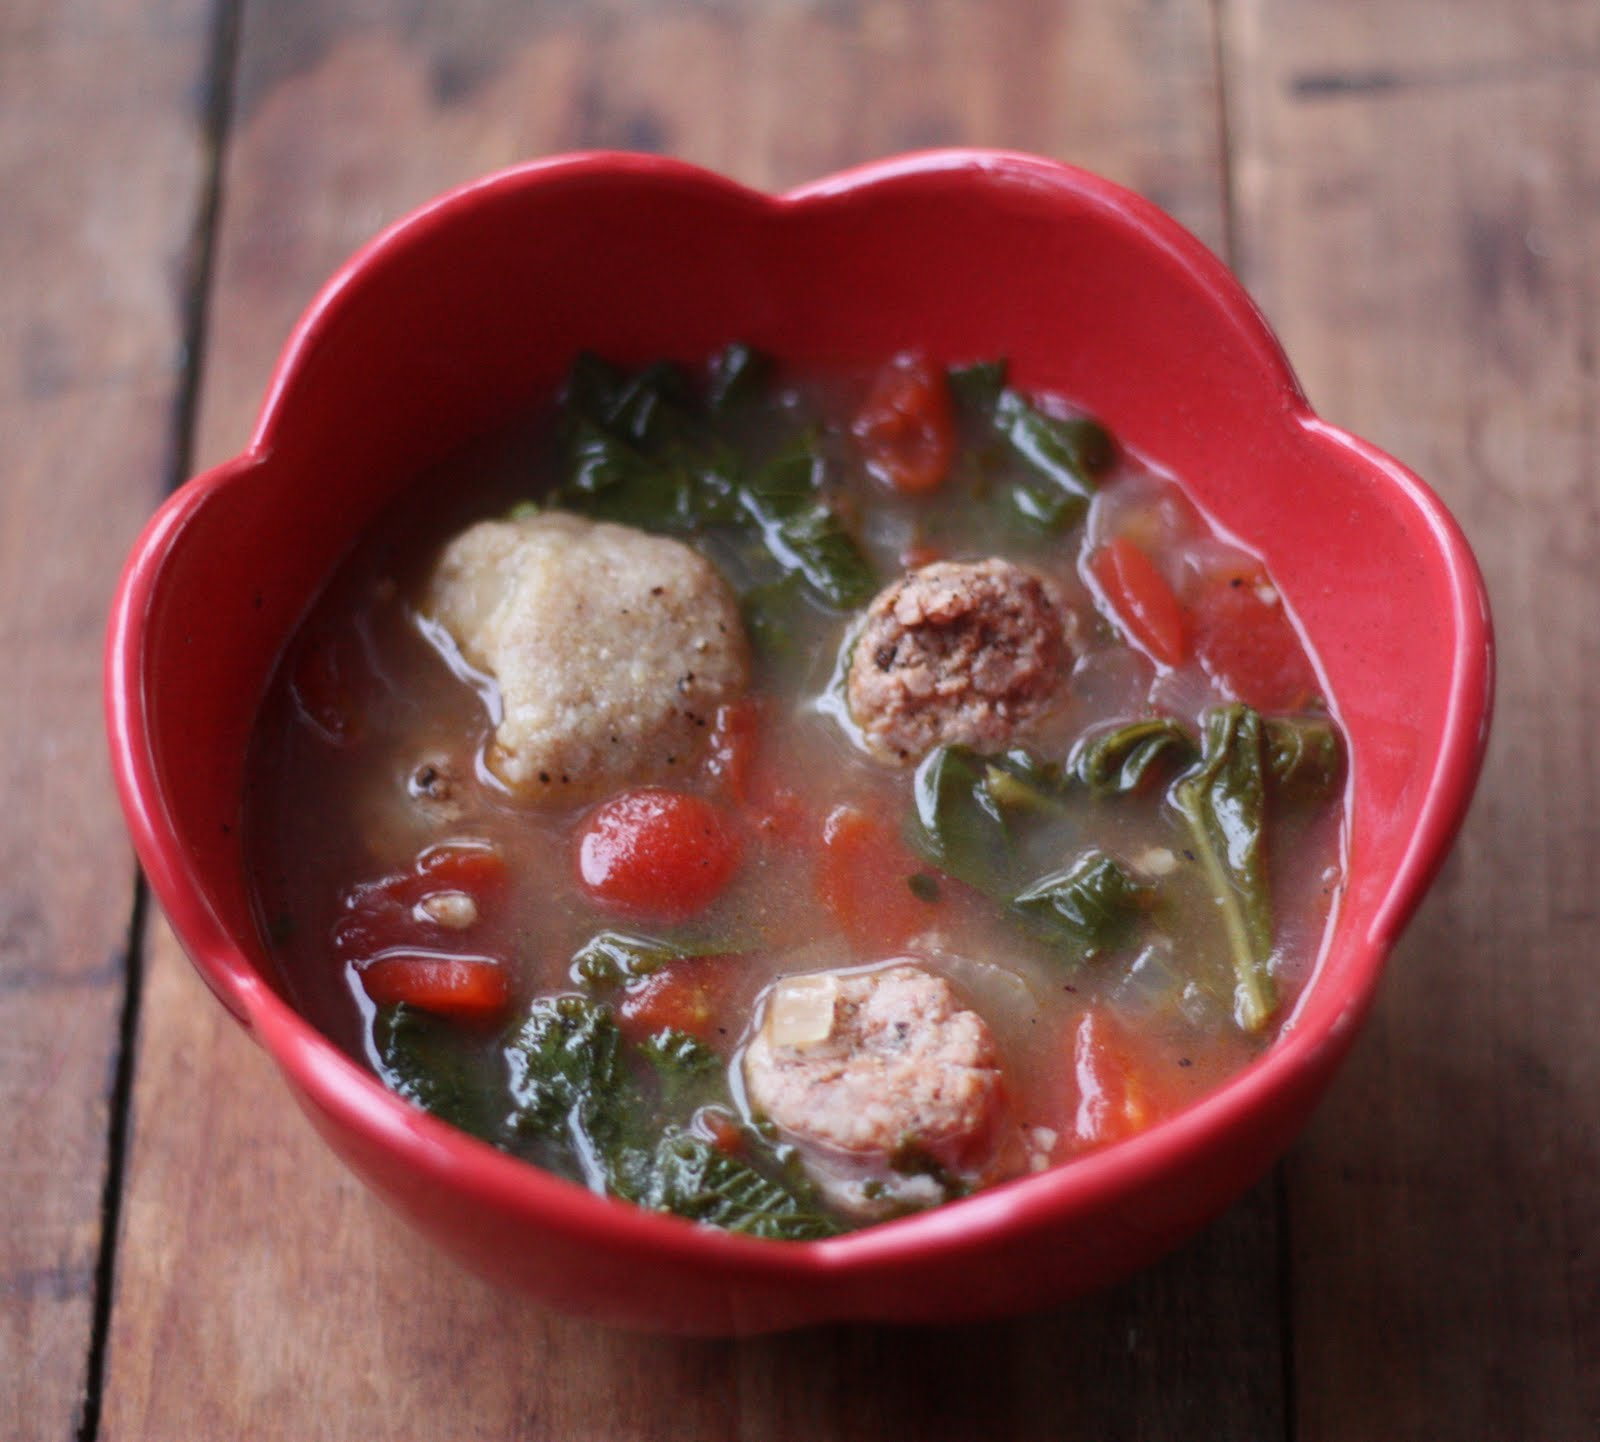 Mixed Greens and Sausage Soup with Cornmeal Dumplings